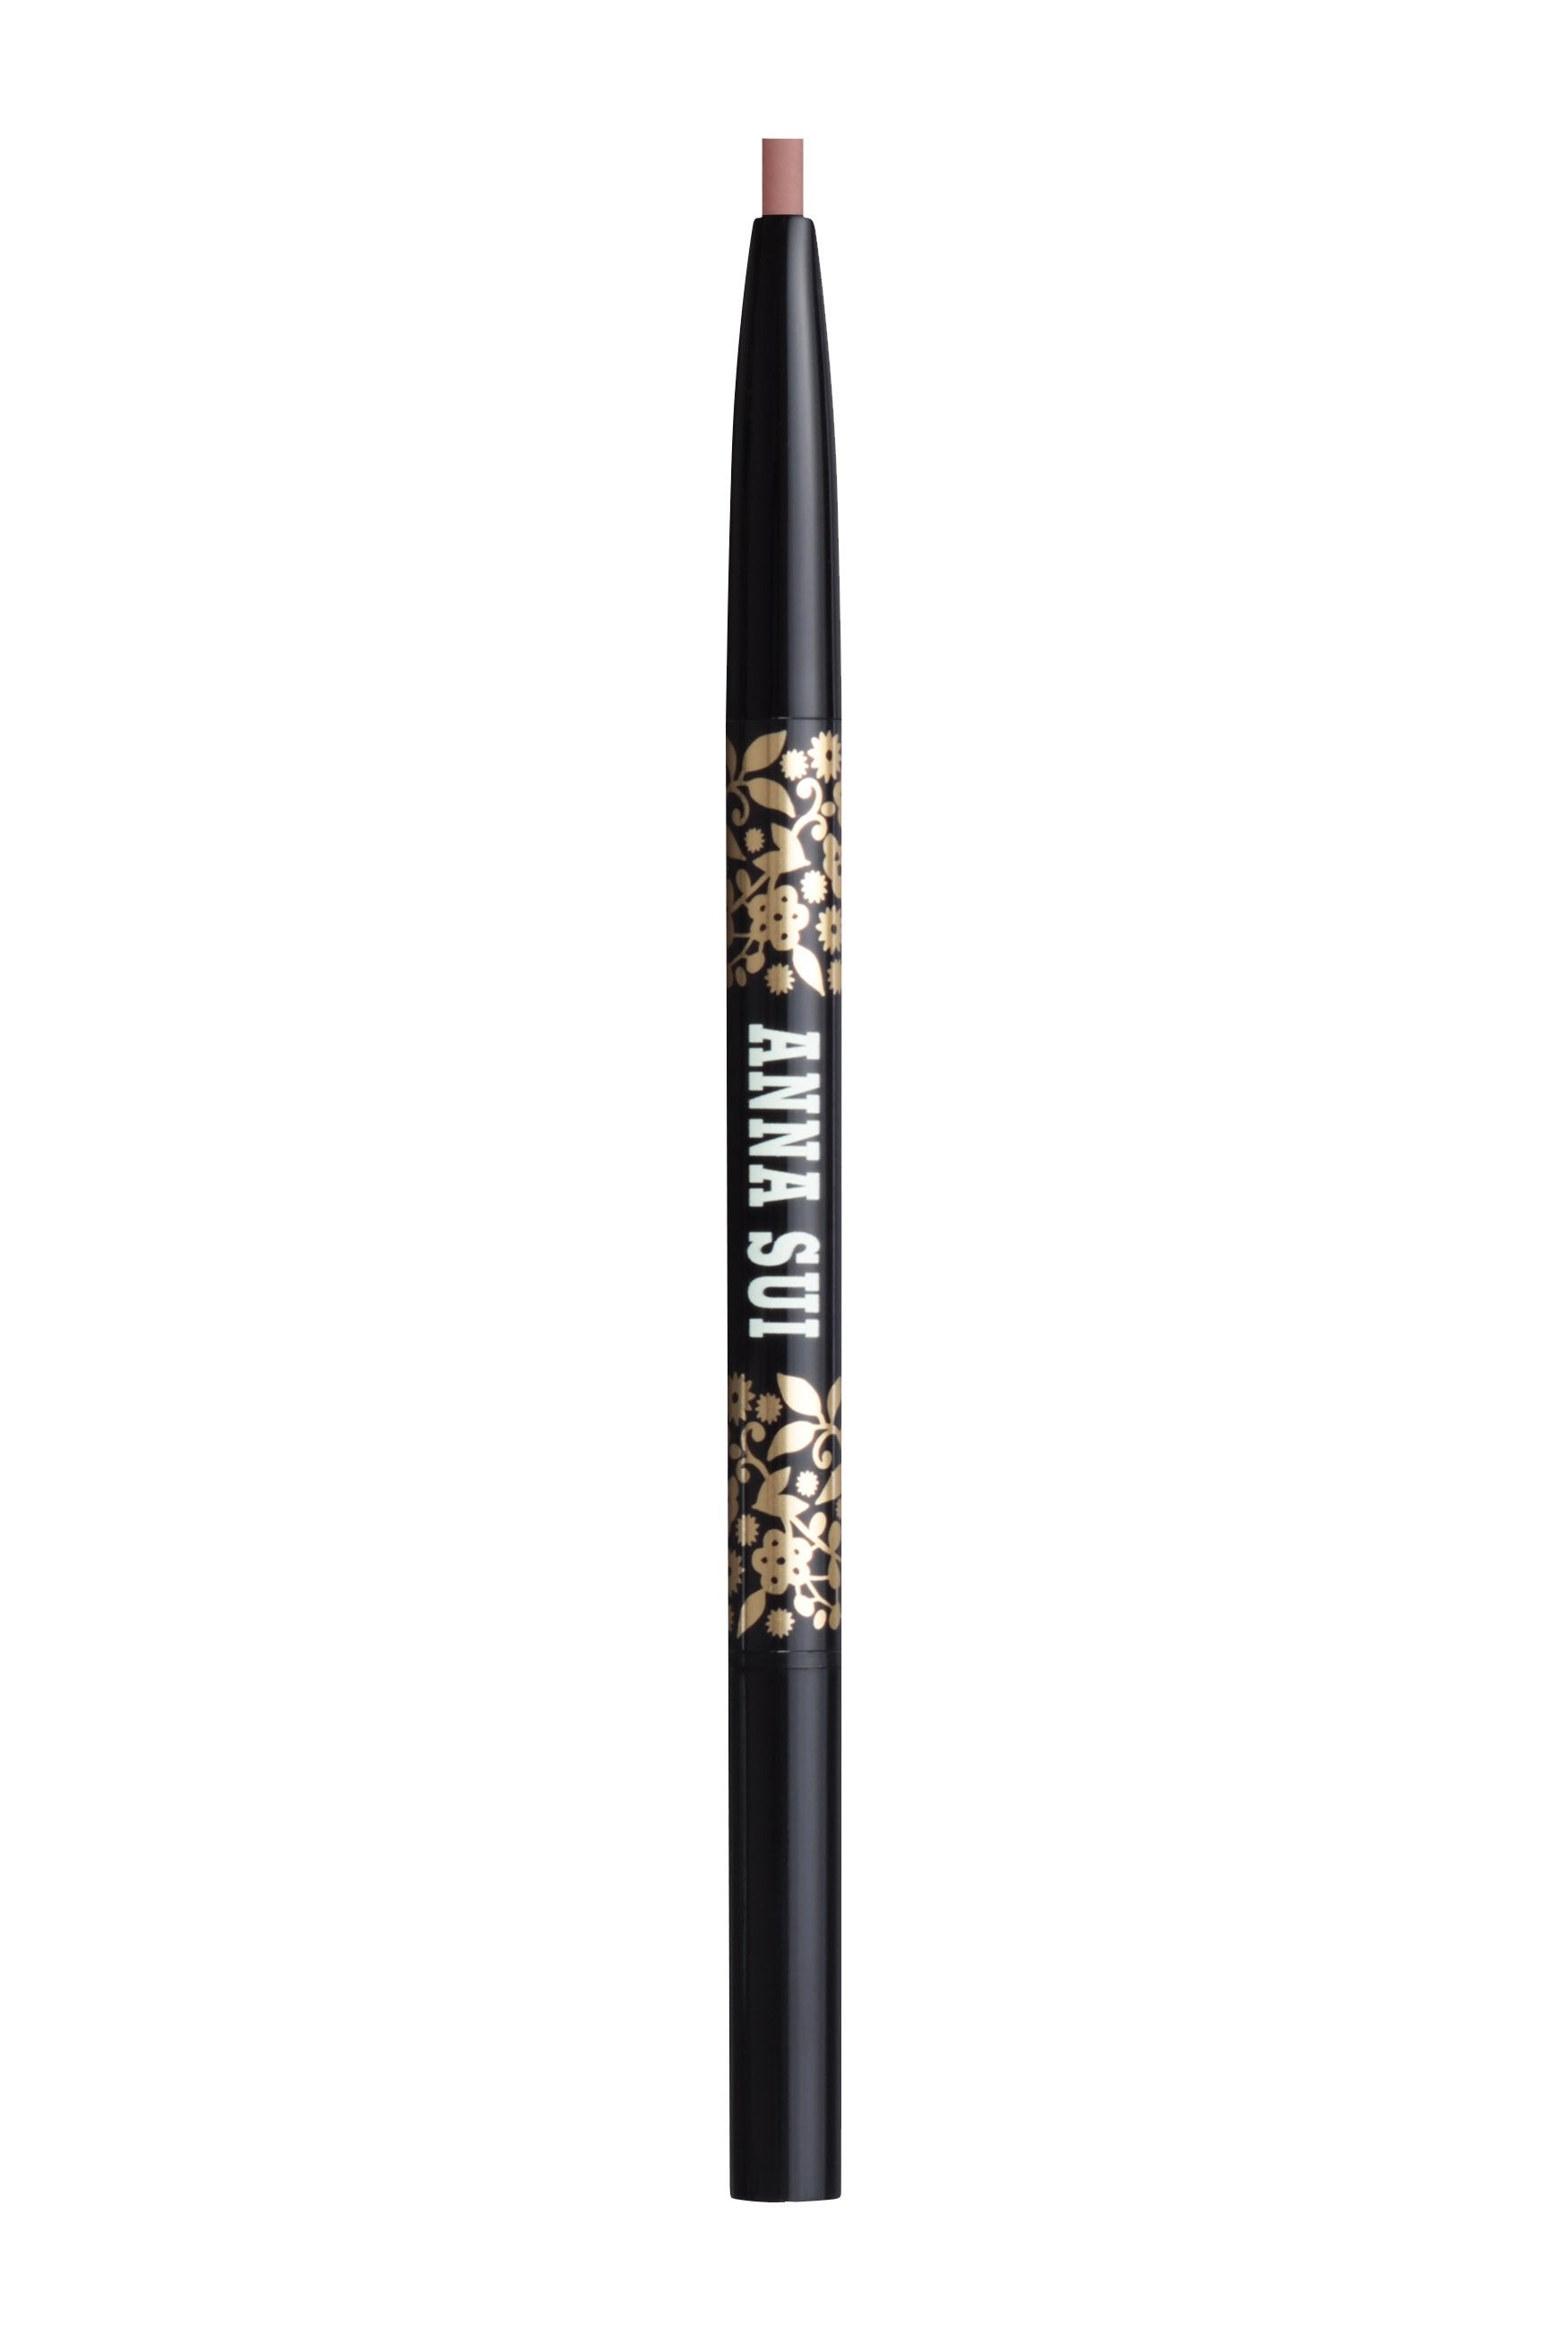 https://anna-sui.myshopify.com/products/eyebrow-liner-n